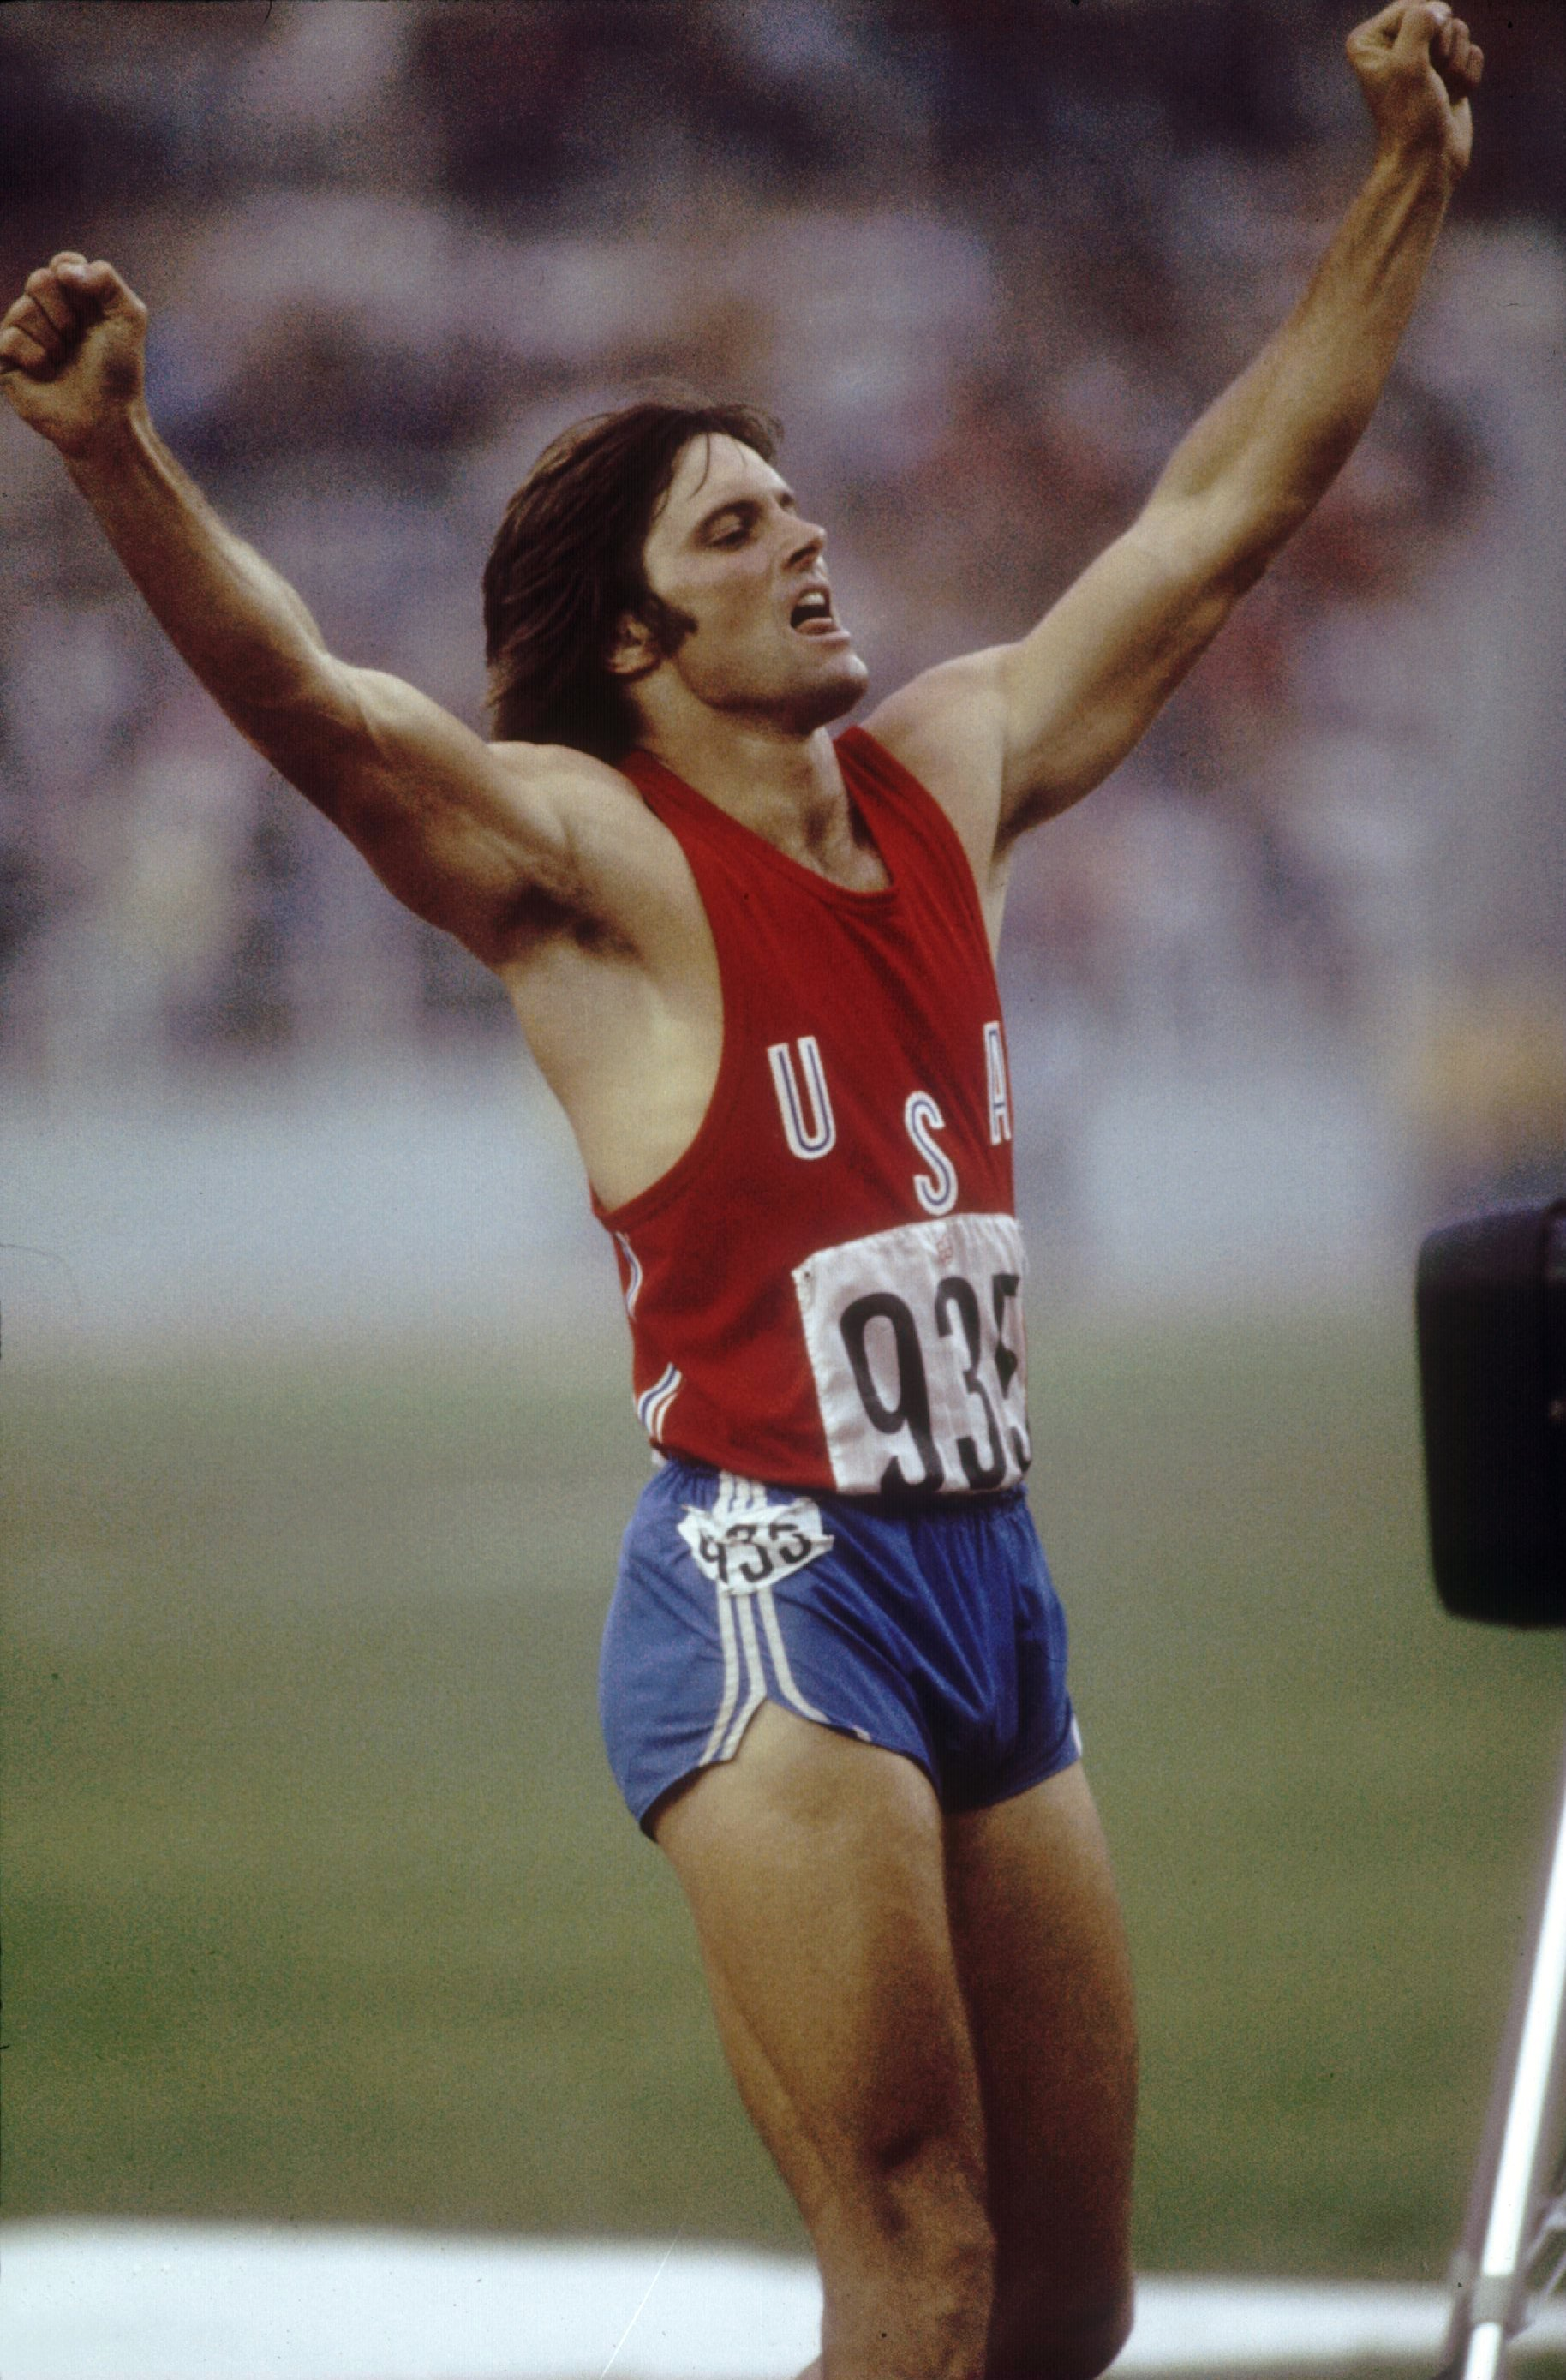 Bruce Jenner of the USA celebrates during his record setting performance in the decathlon in the 1976 Summer Olympics in Montreal, Canada. | Photo: GettyImages/ Tony Duffy/Allsport